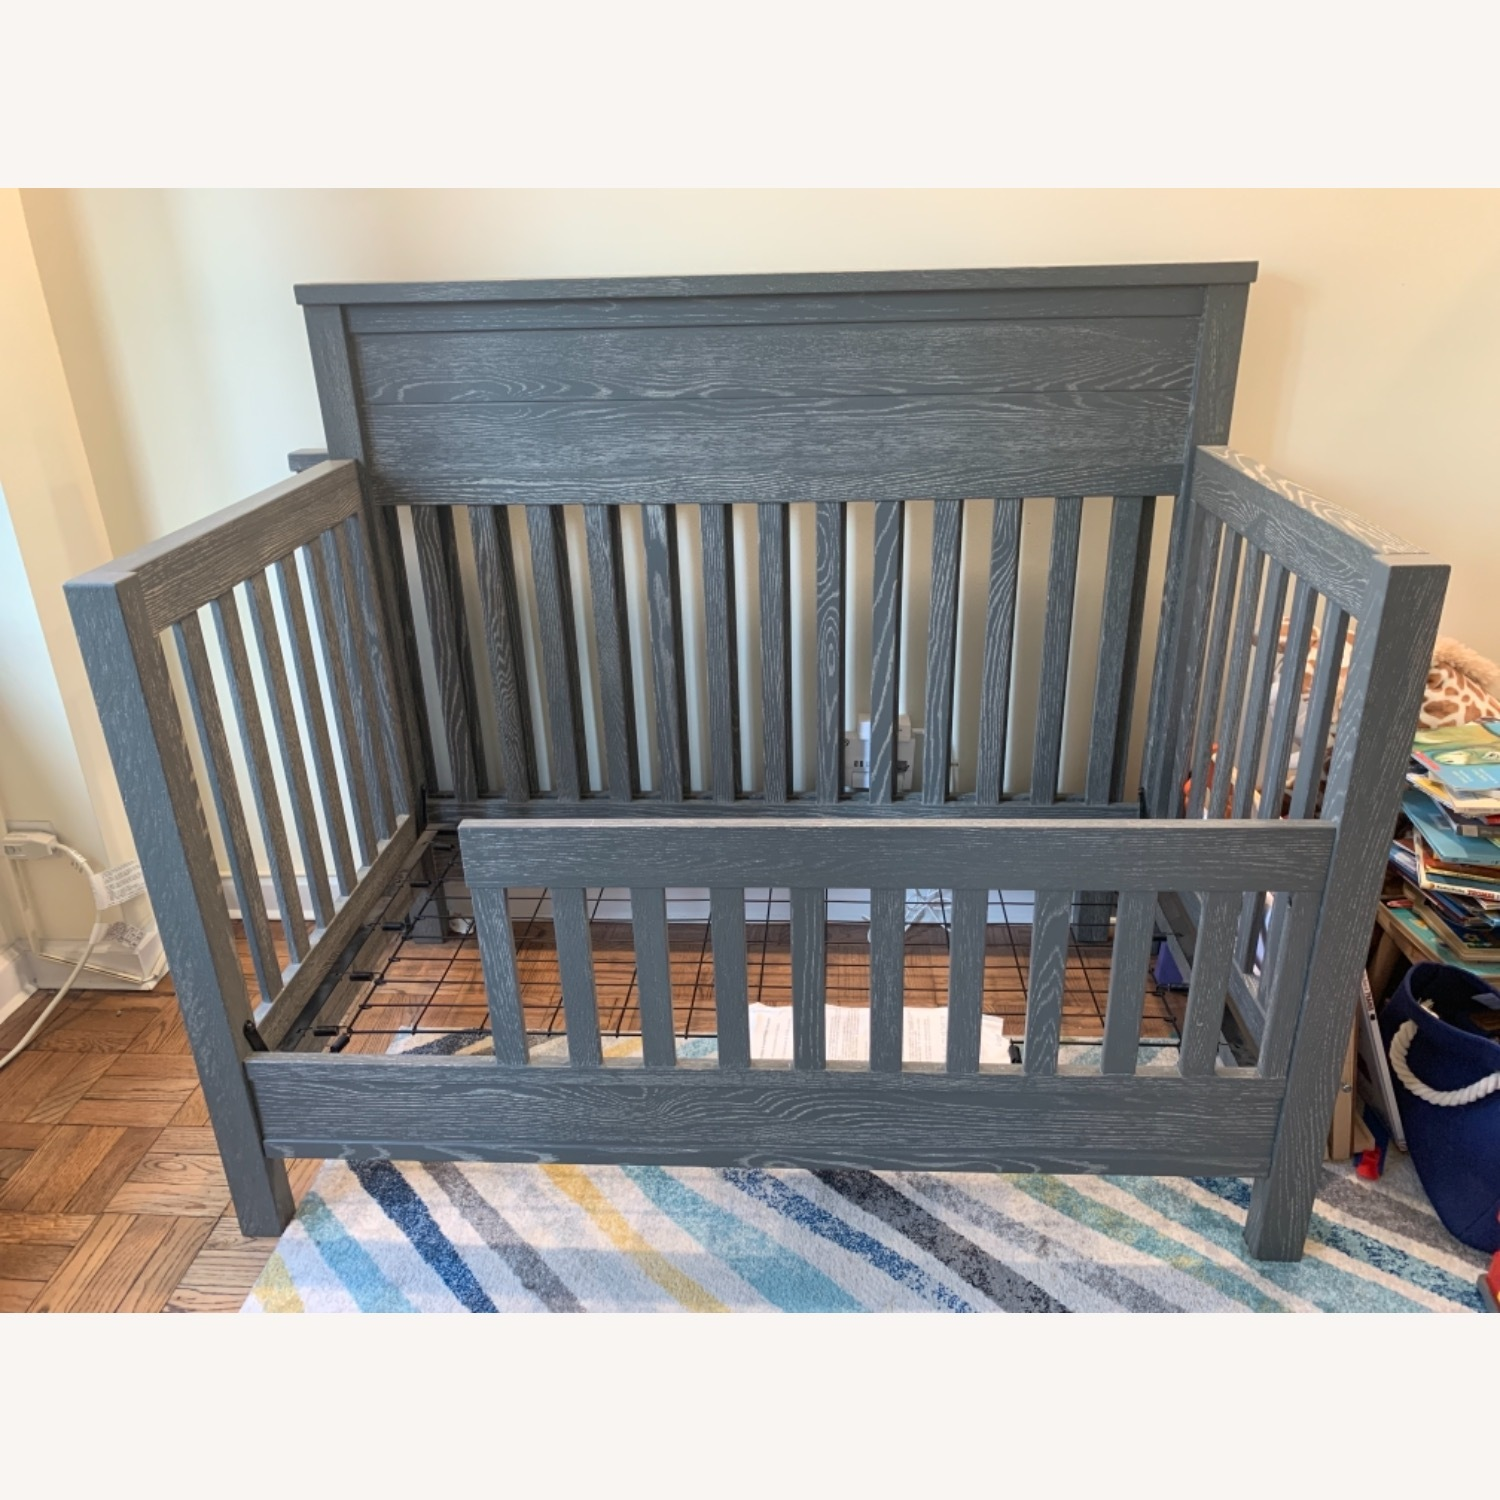 Pottery Barn Charlie Crib, Toddler Bed, Full Bed - image-1